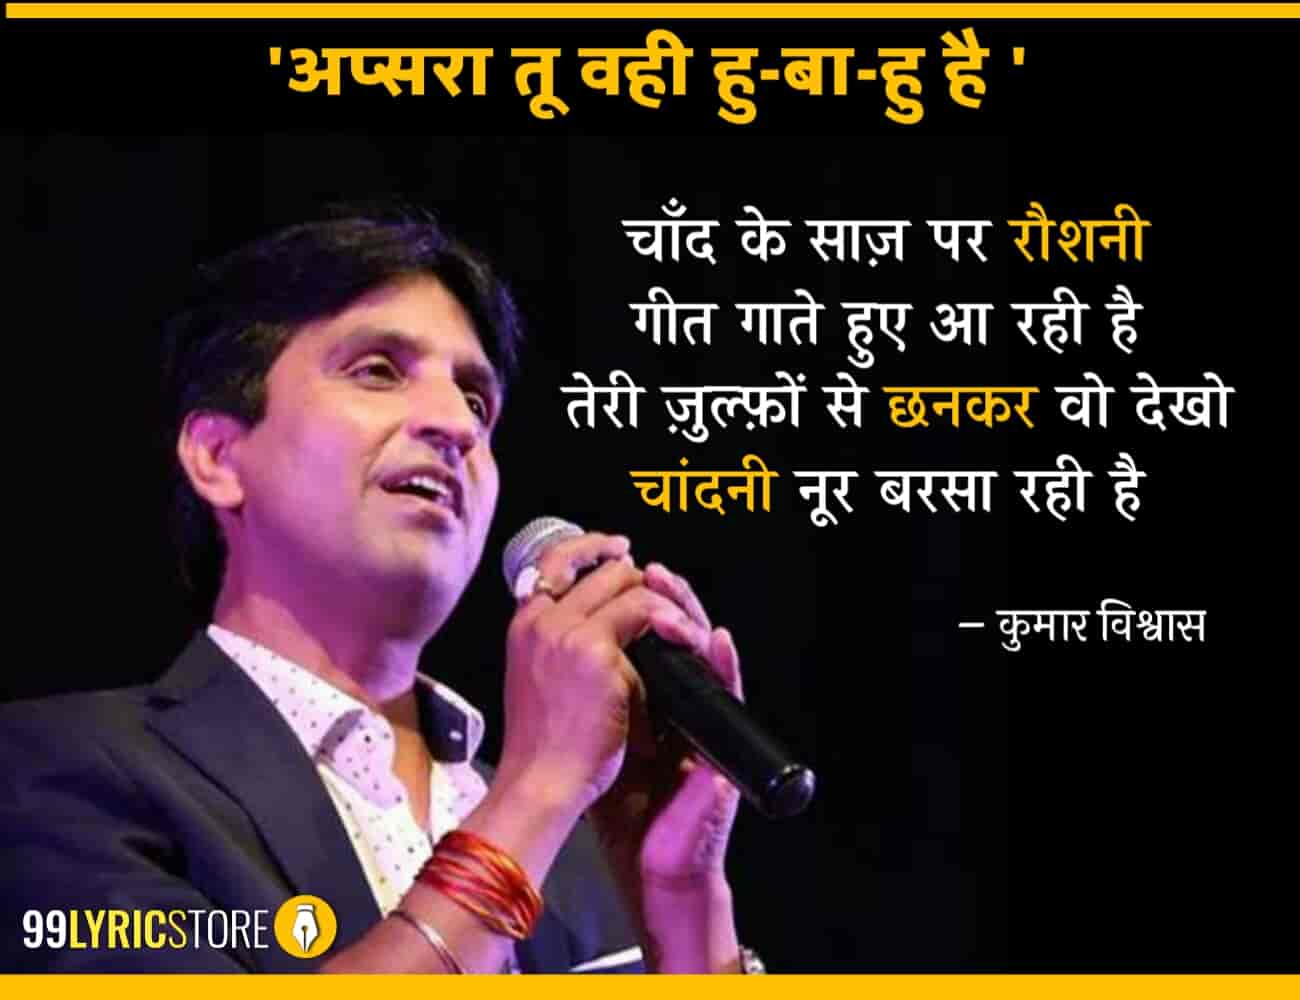 This beautiful hindi poem 'Apsara Tu Wahi Hu-Ba-Hu Hai' has written and Performed by Kumar Vishwas.